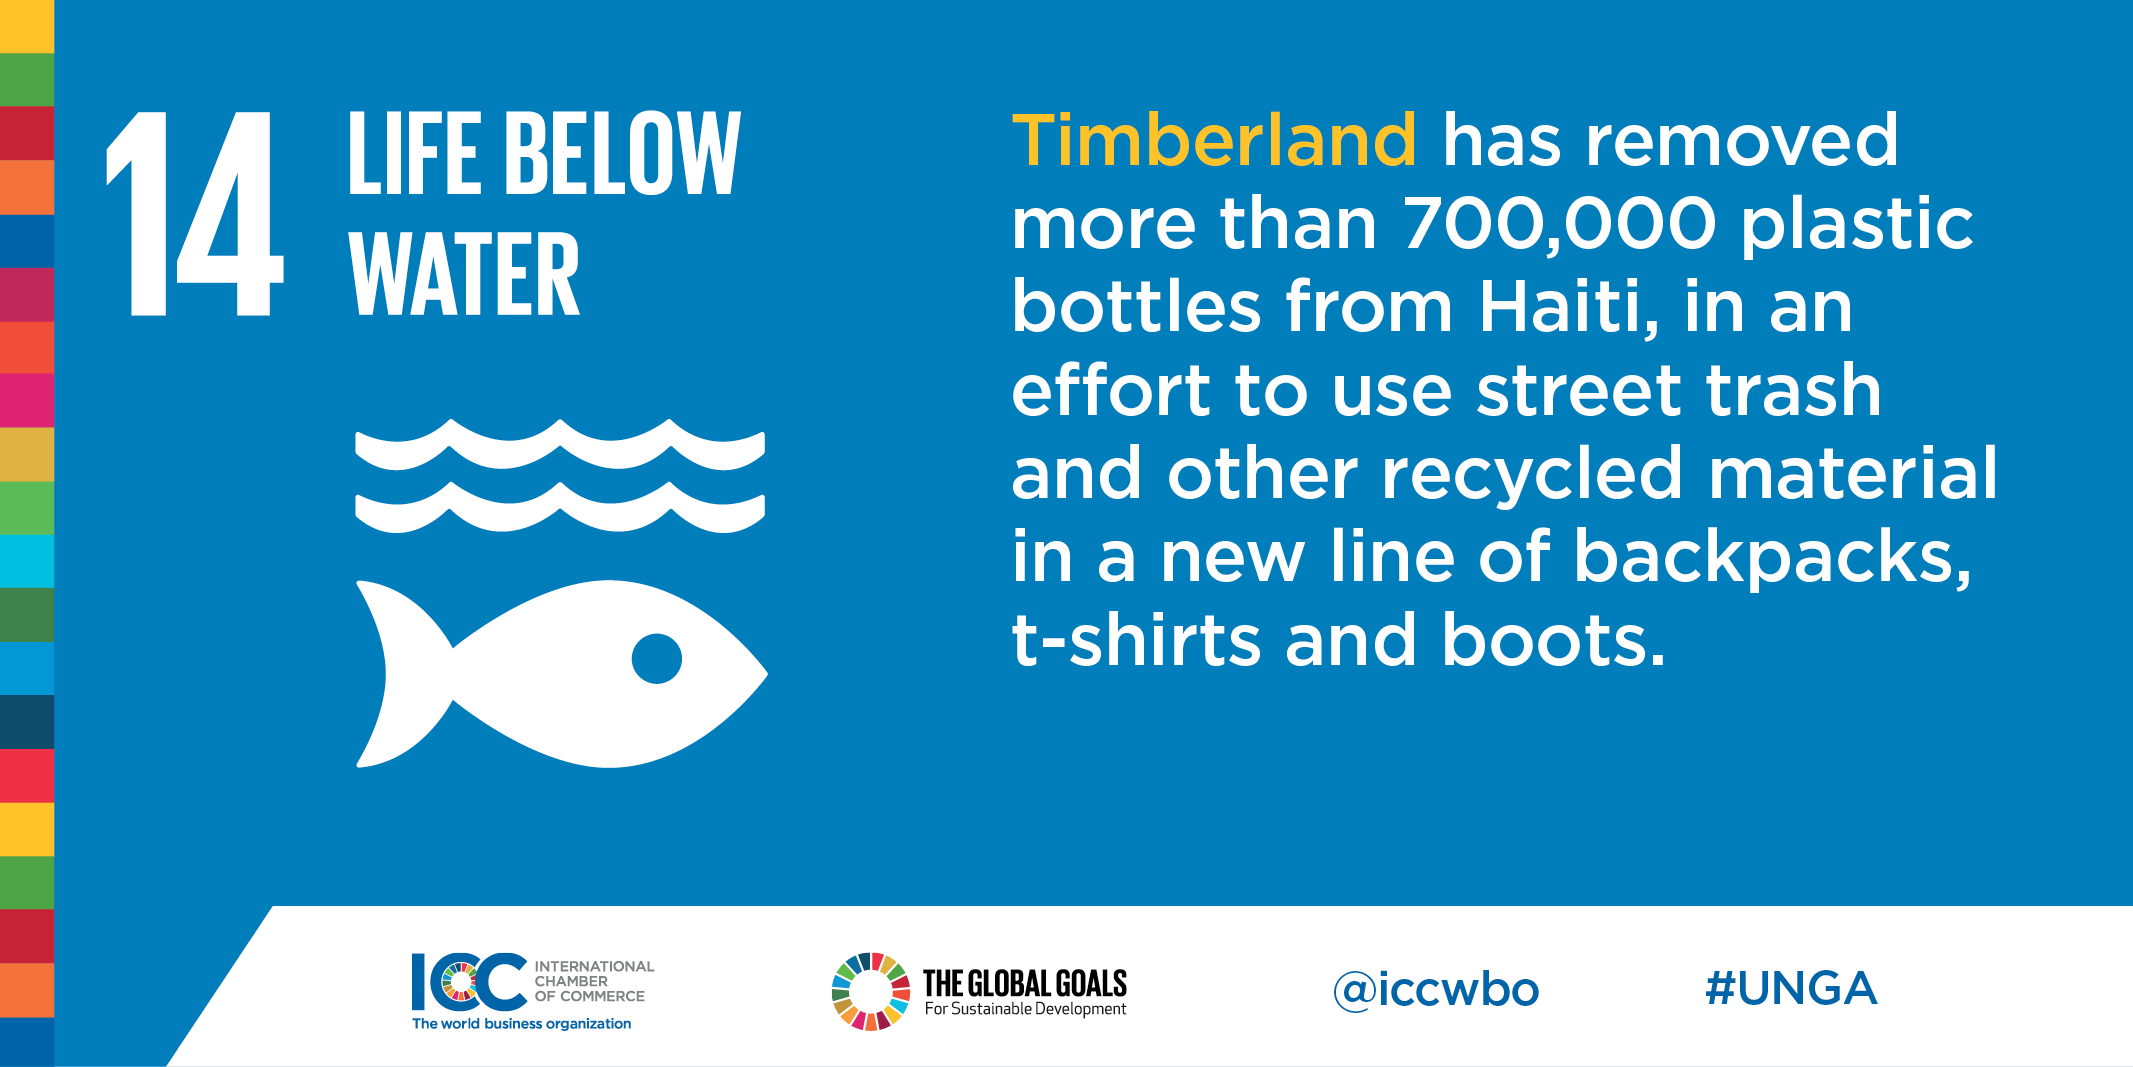 ICC Business Commits Plastic Pollution Timberland